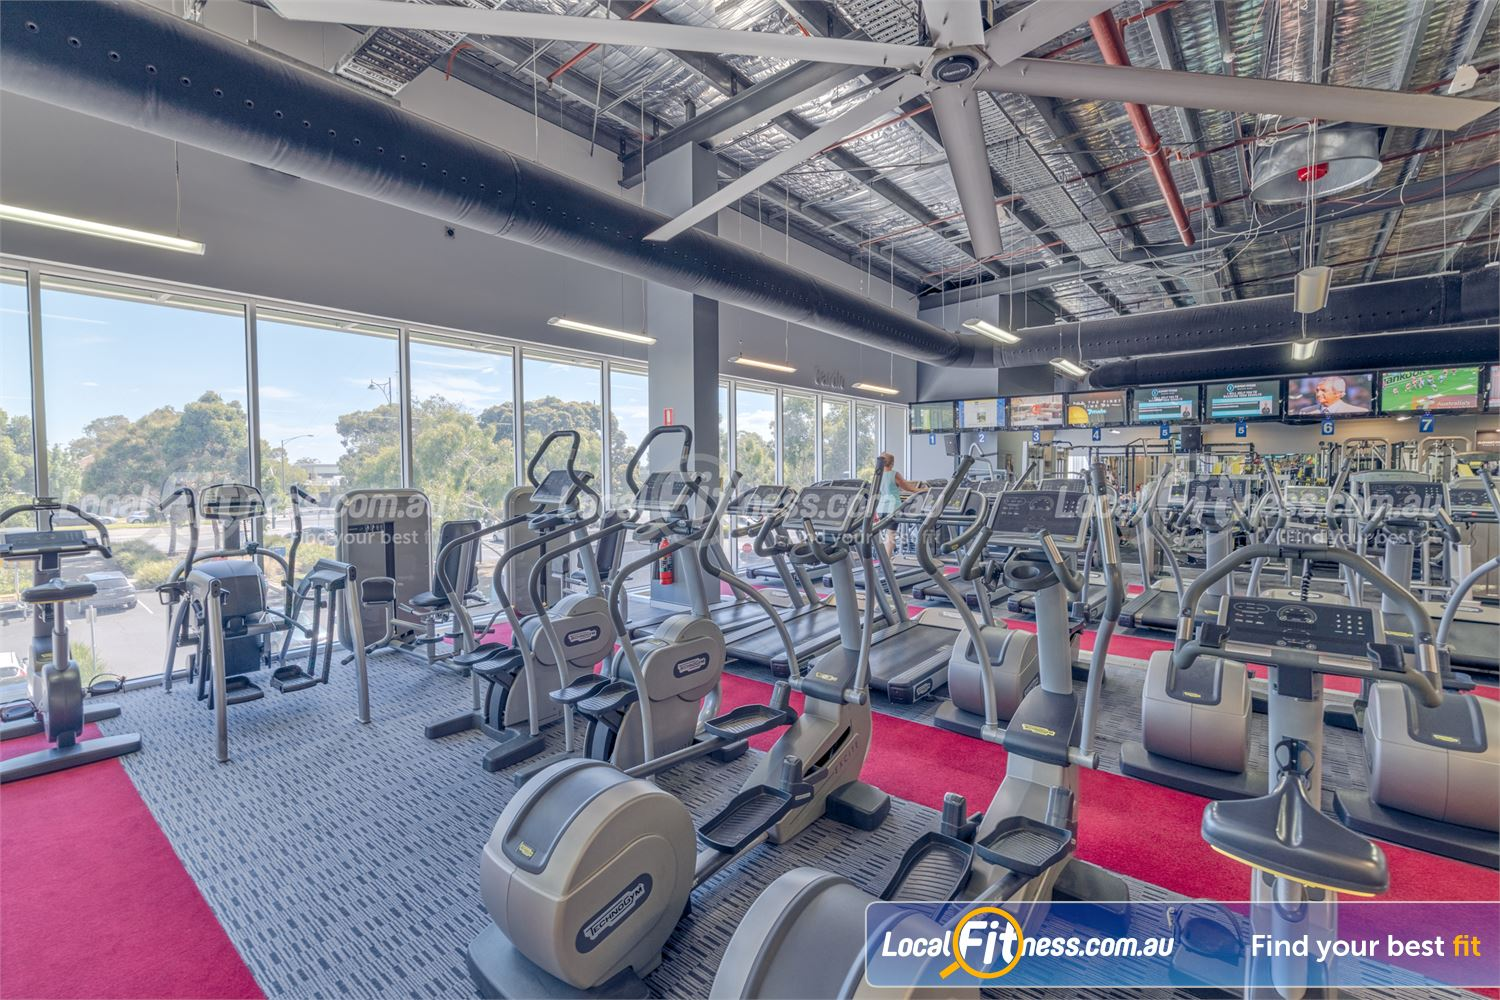 Element Fitness Health Club Nunawading Welcome to Elements Fitness Health Club in Nunawading.